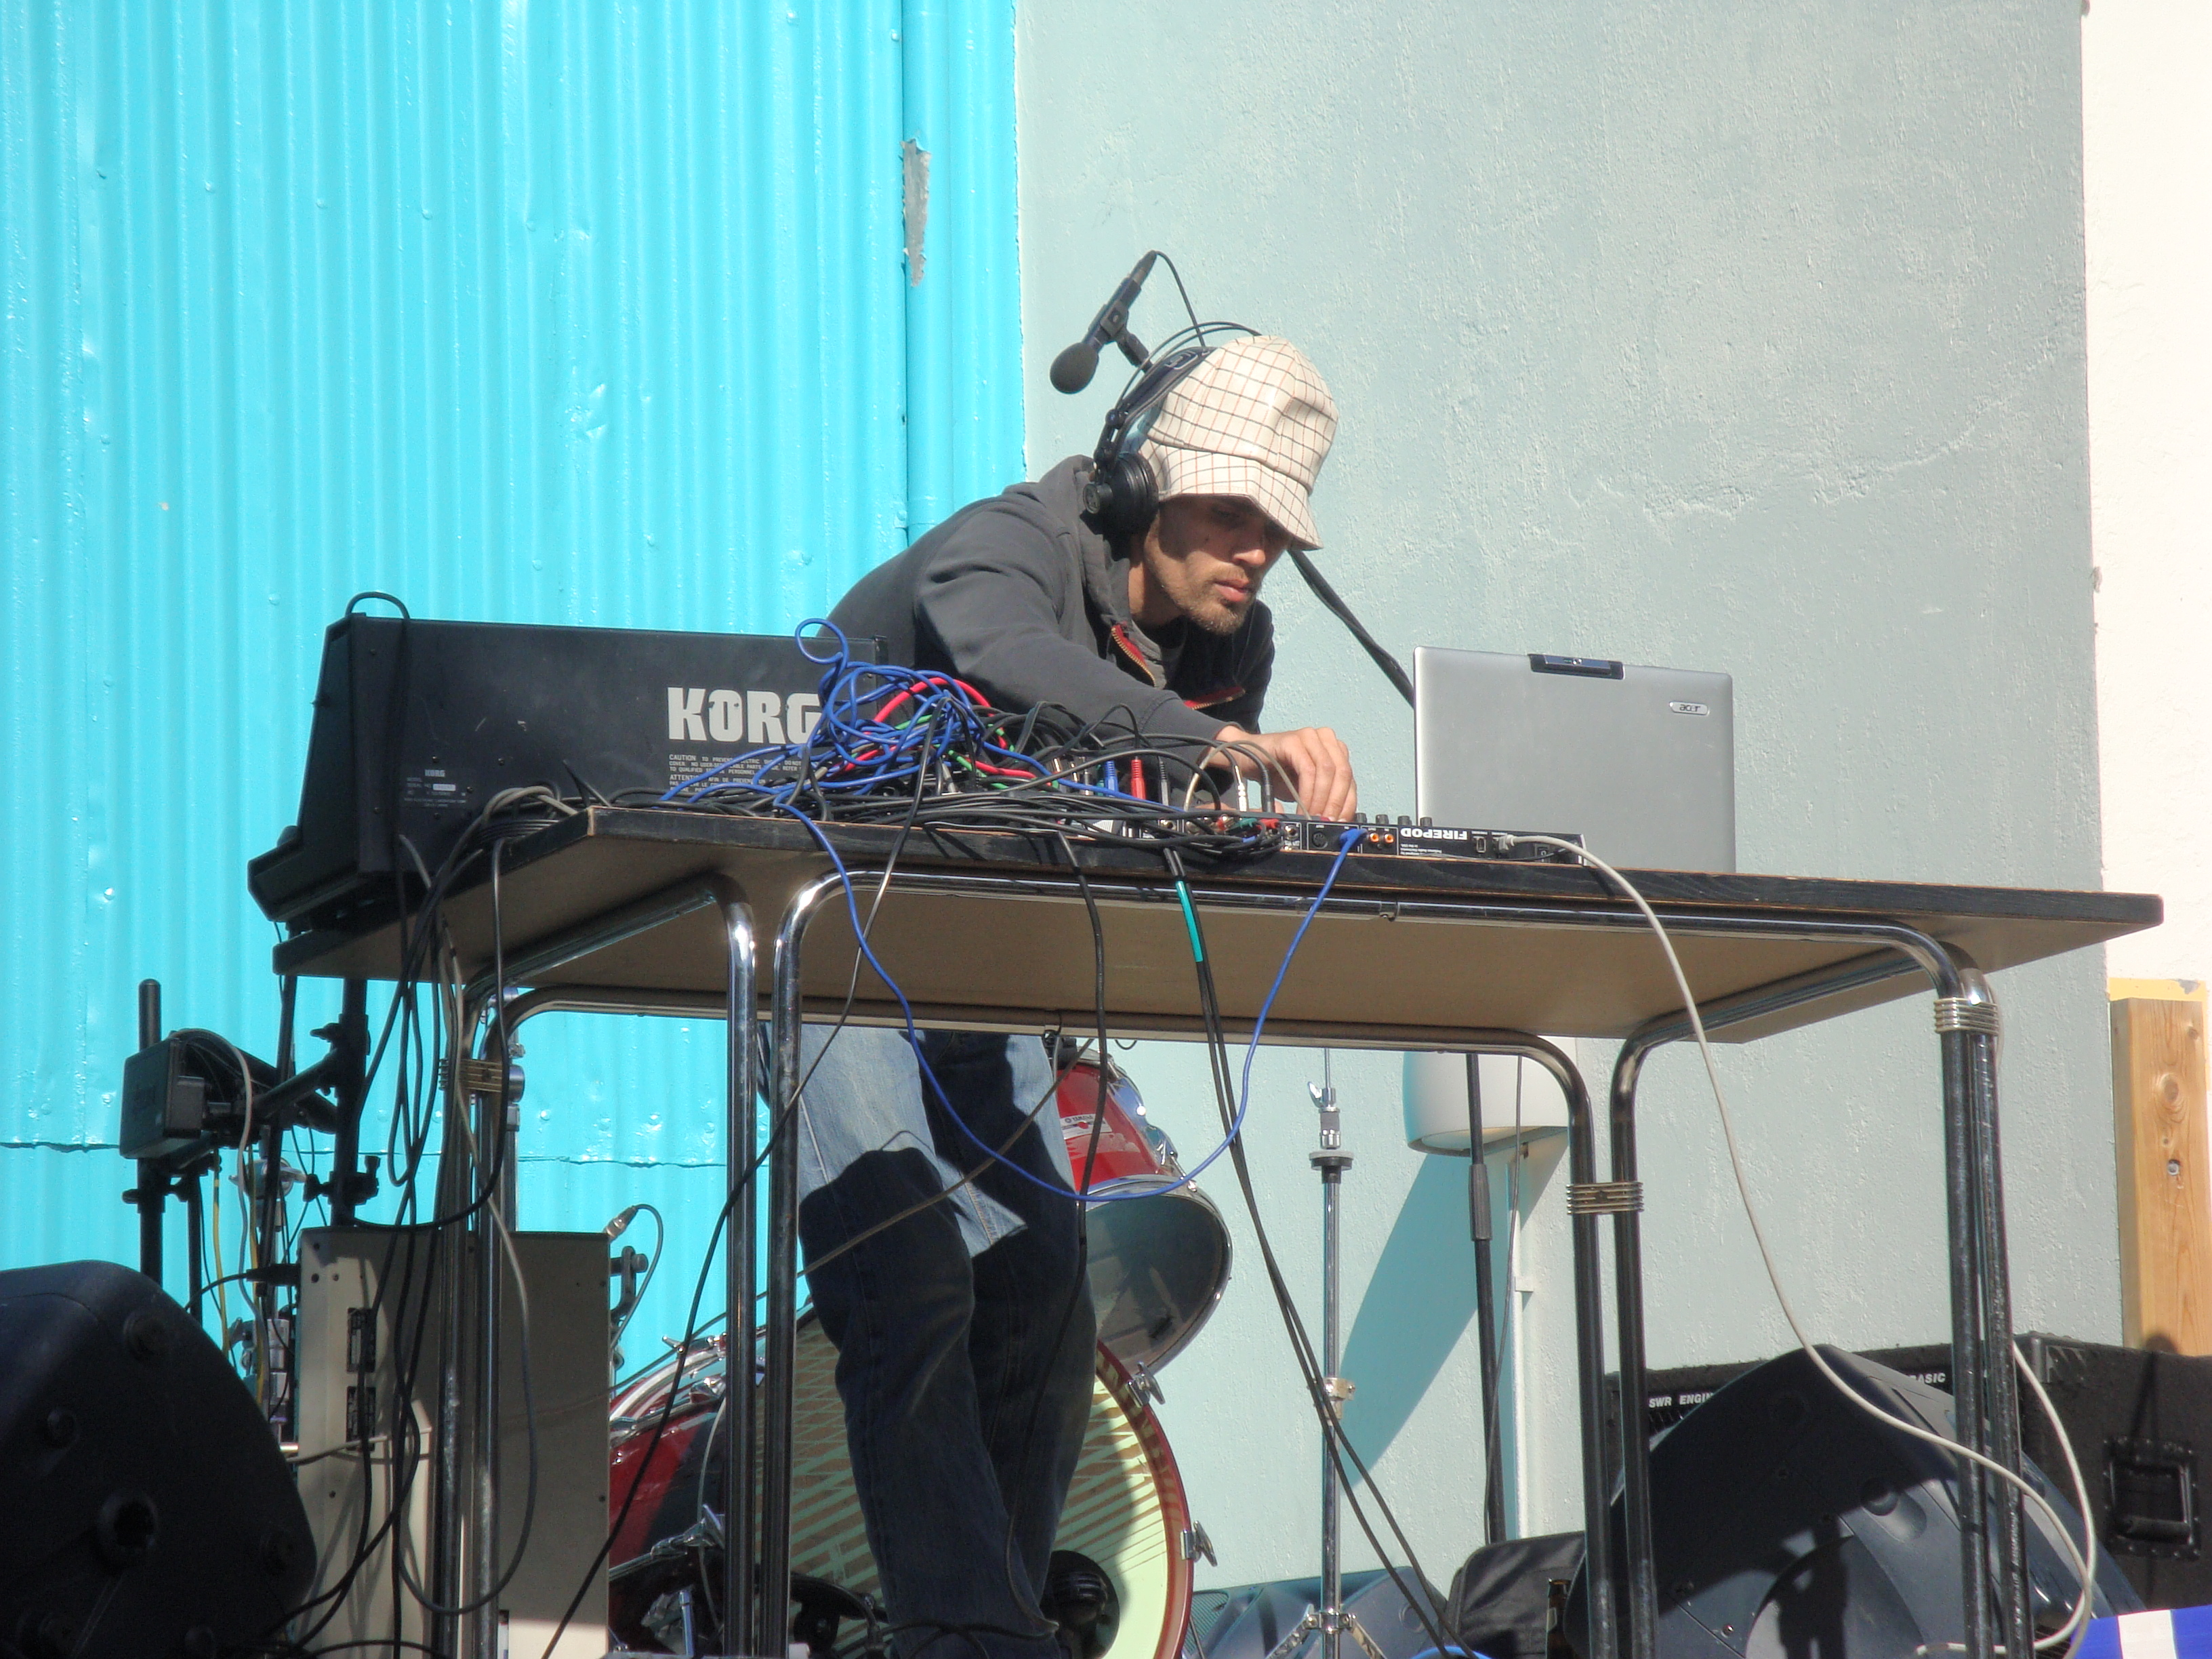 Live outdoor performance (electronica), Reykjavik